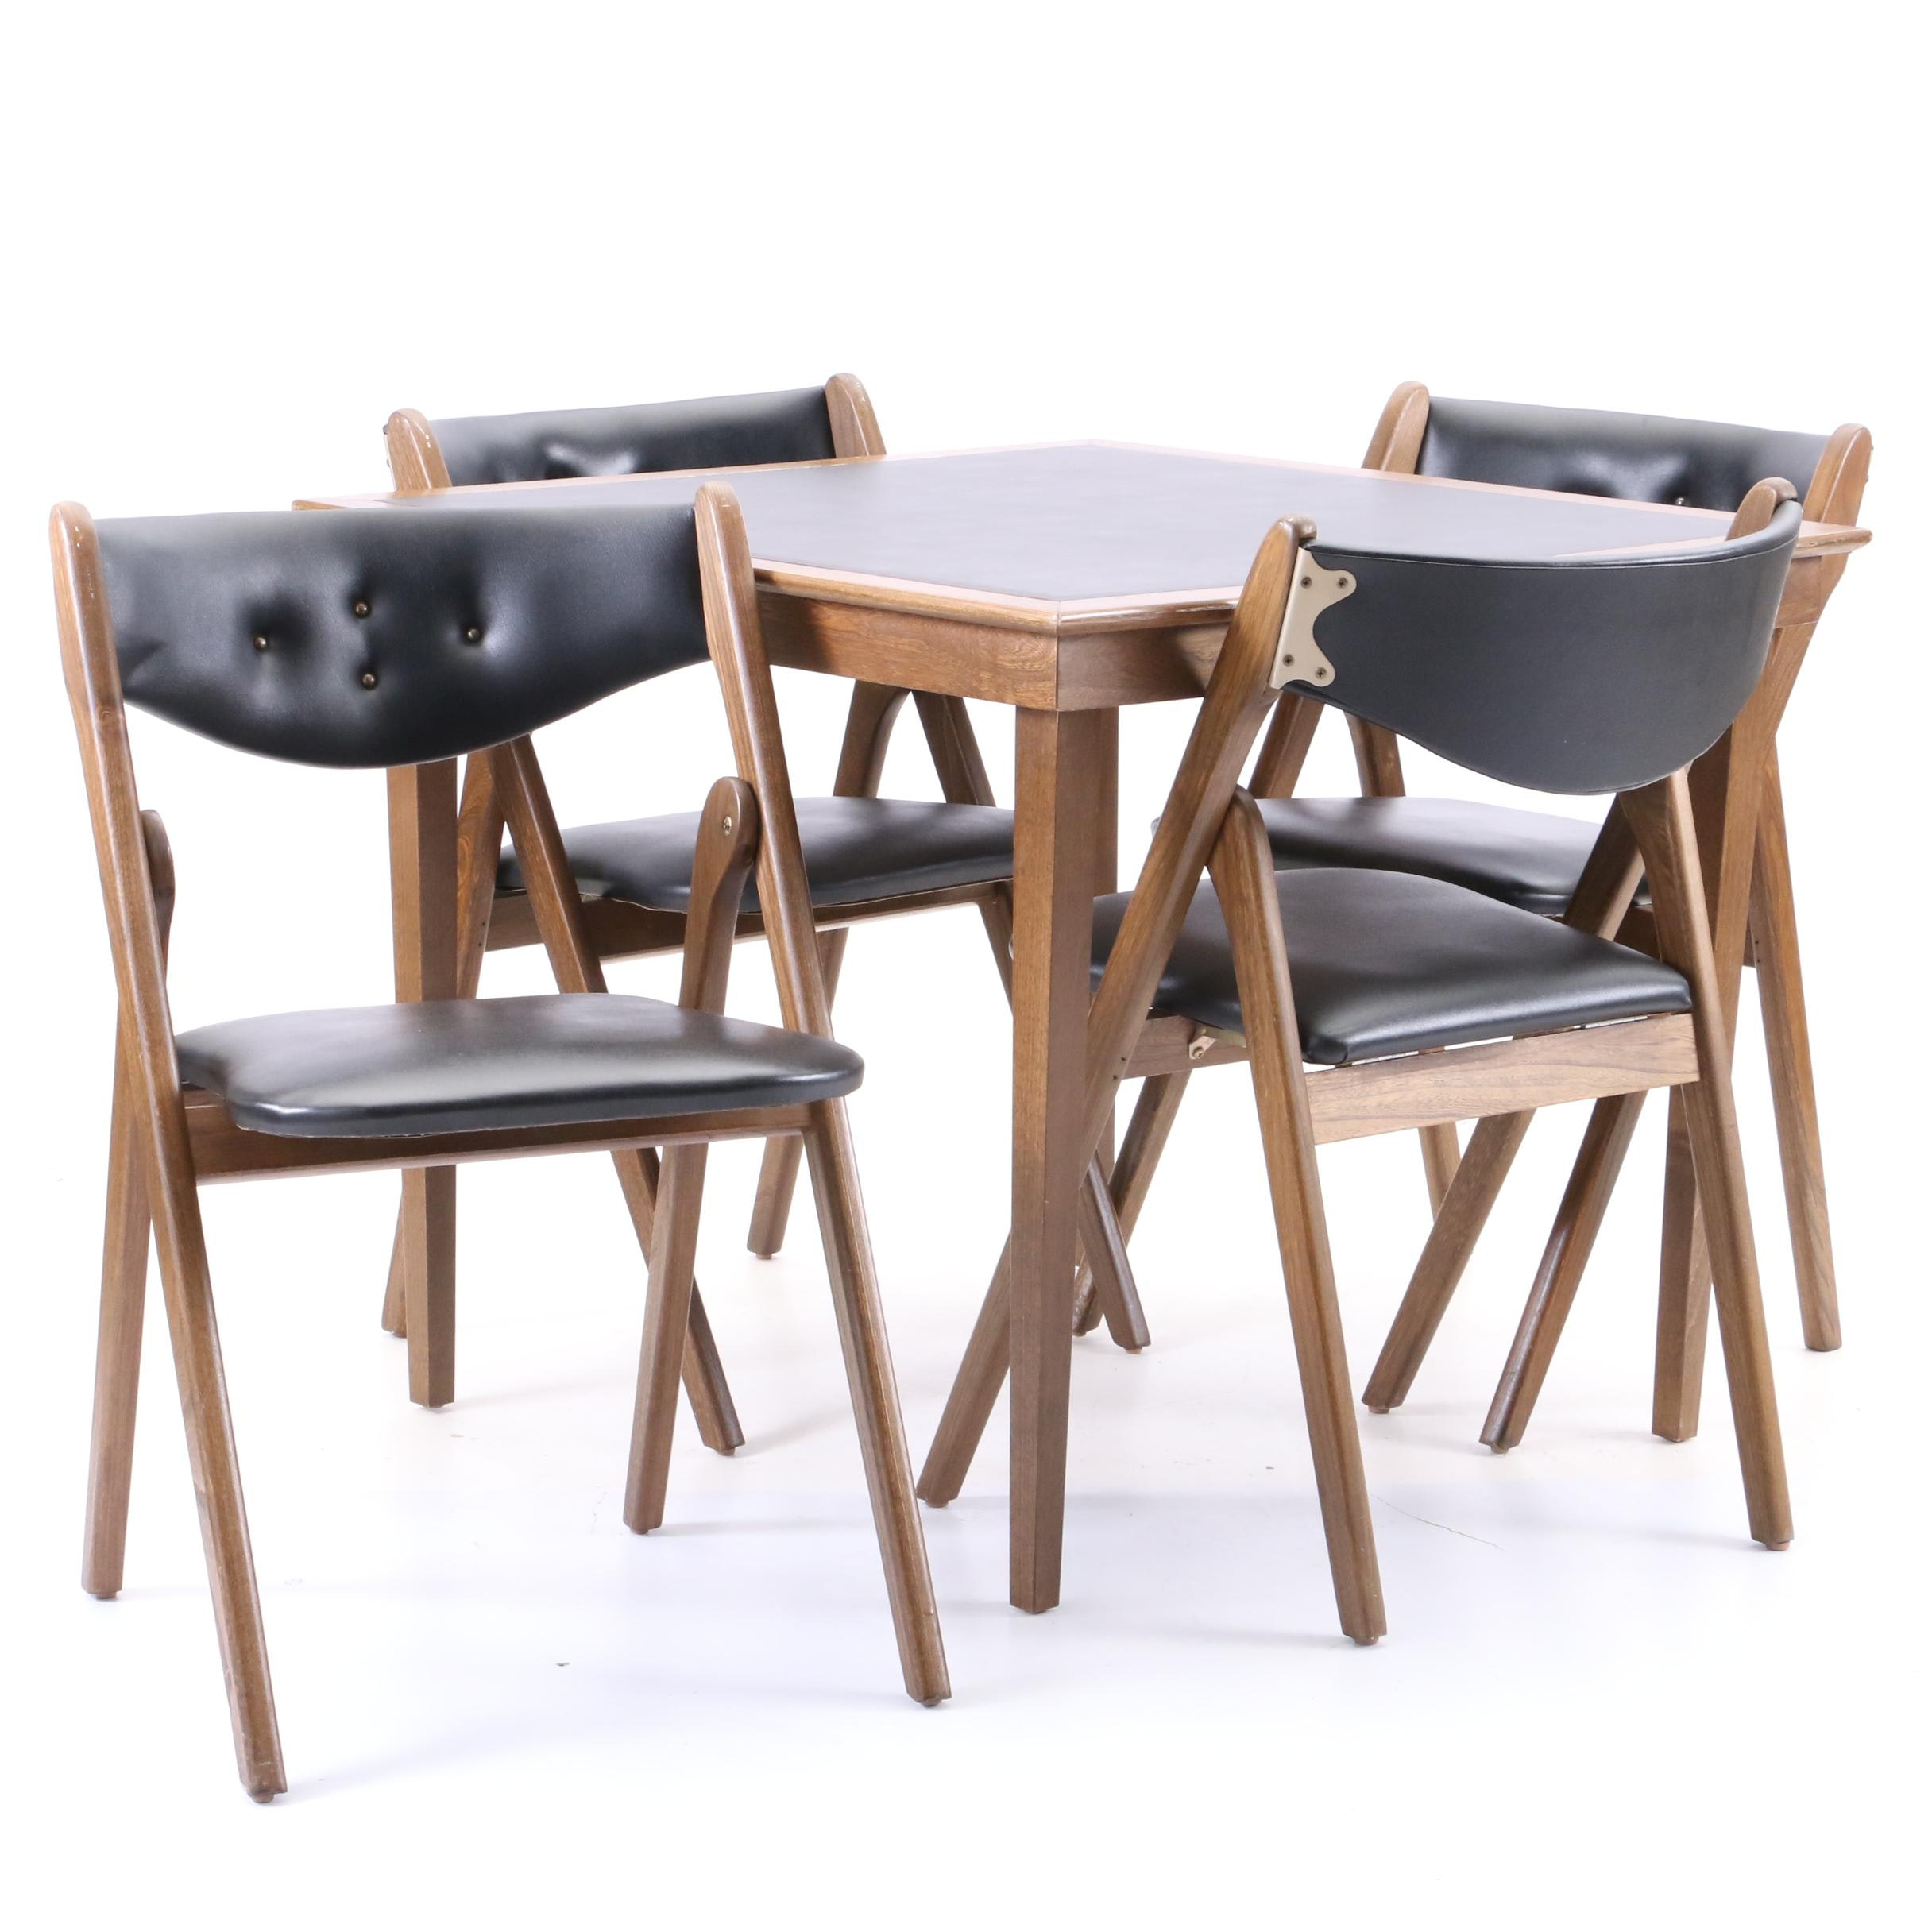 Folding Table and Chairs, Mid-20th Century